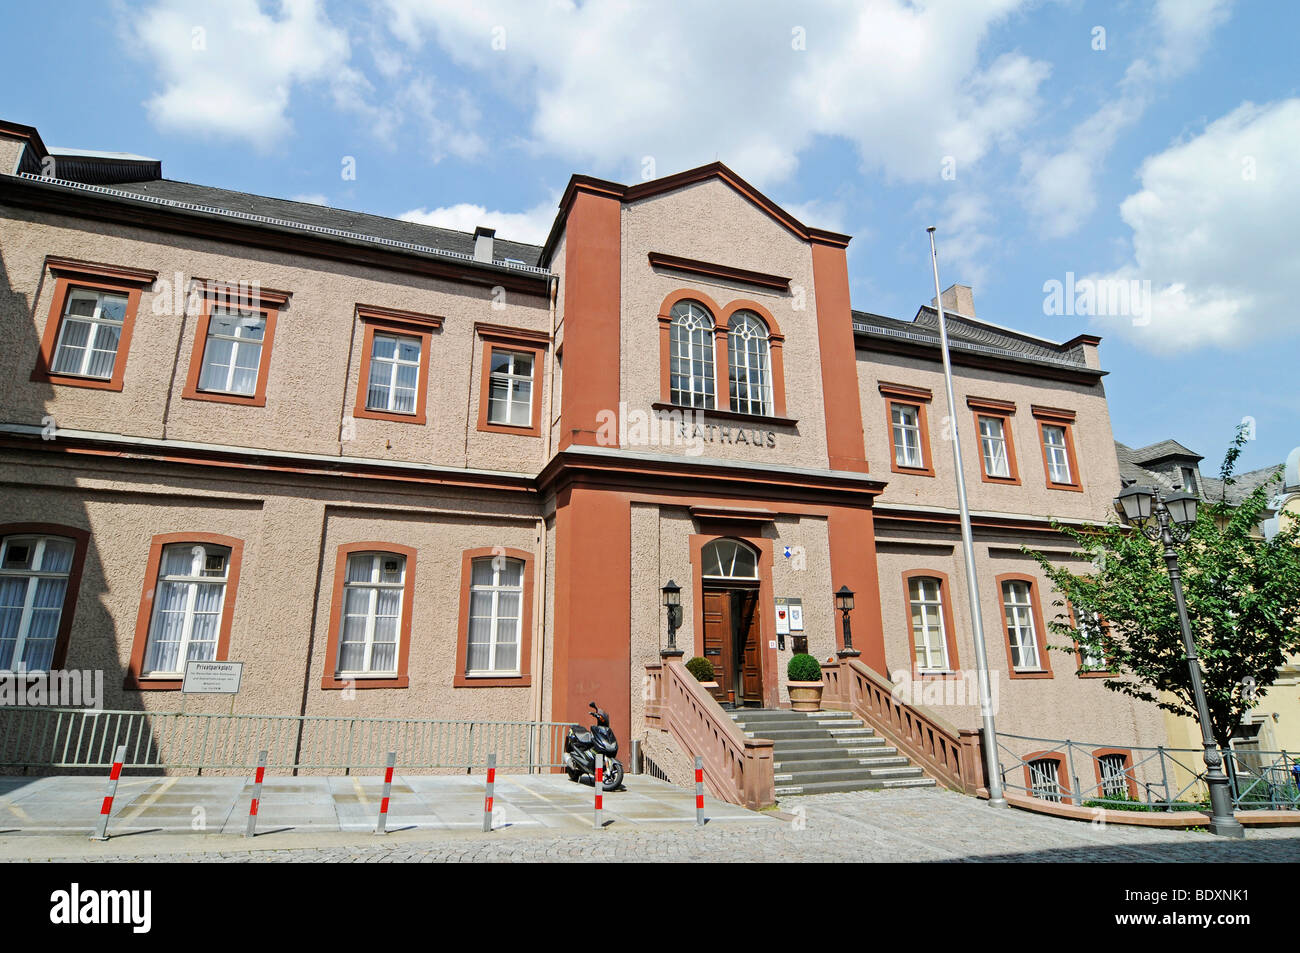 Historisches Archiv Historical Archive, former city hall, historic centre, Wetzlar, Hesse, Germany, Europe - Stock Image